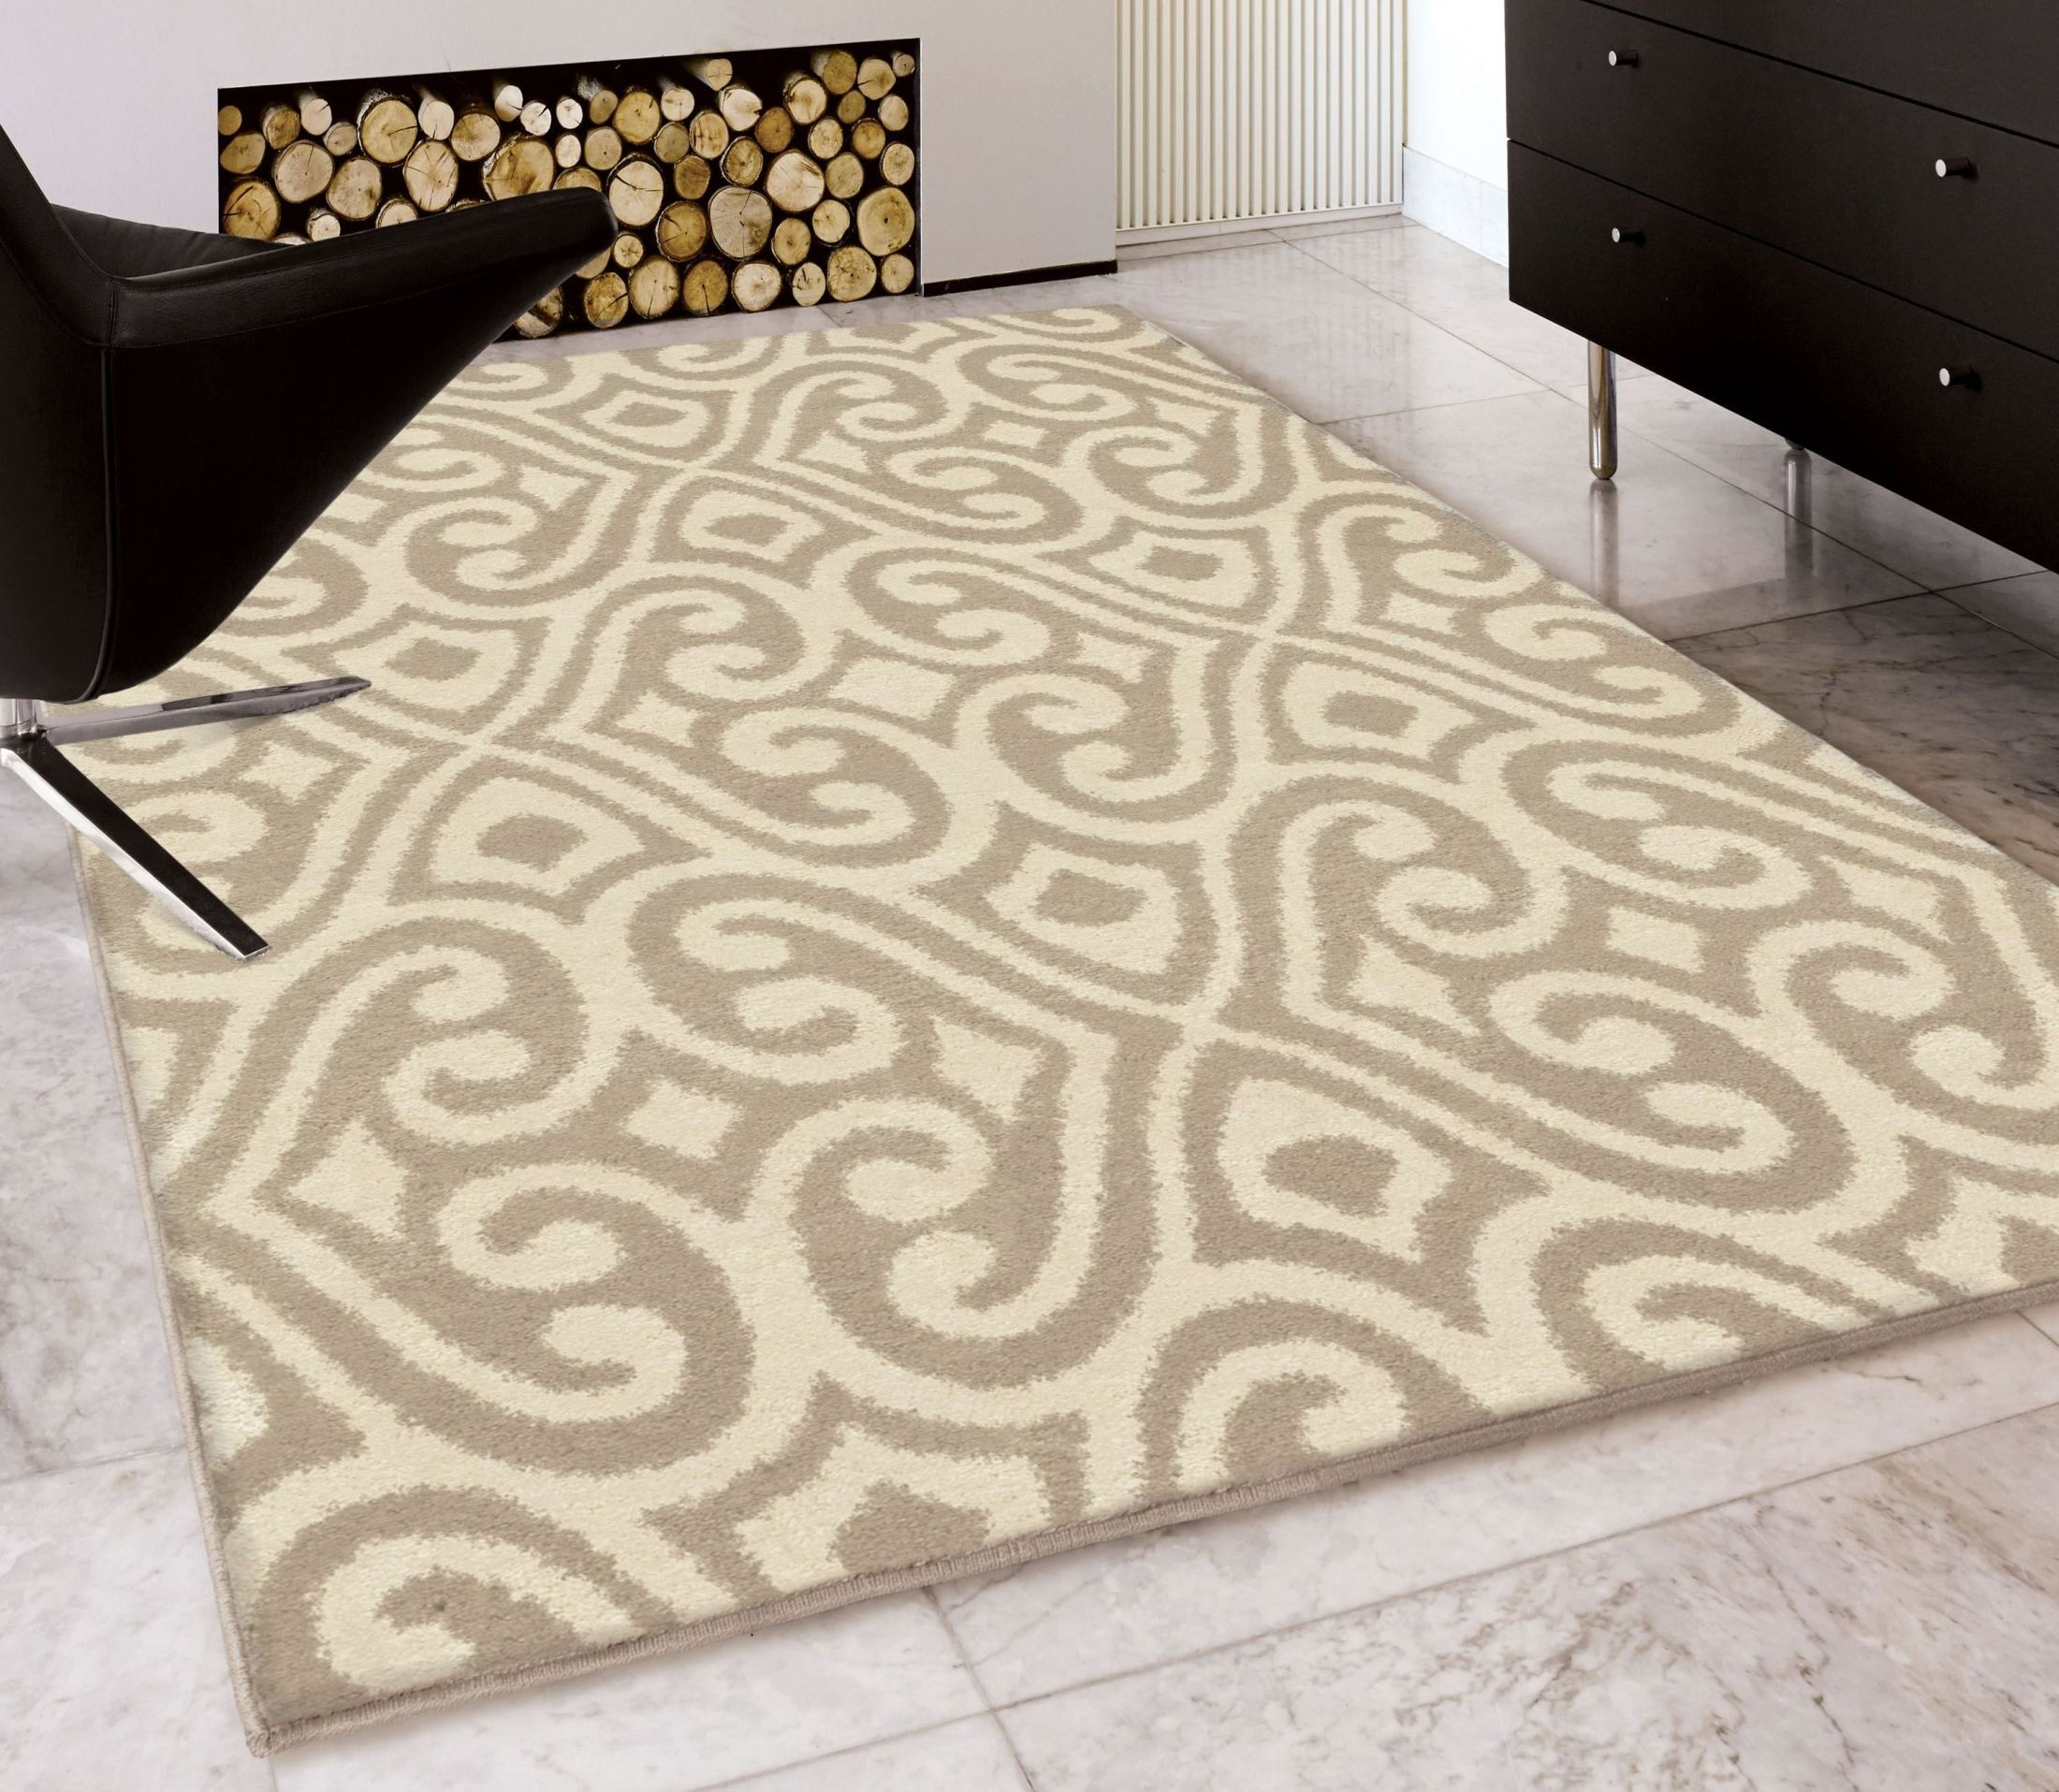 Orian Rugs Plush Damask Santee Tan Area Large Rug, 3409